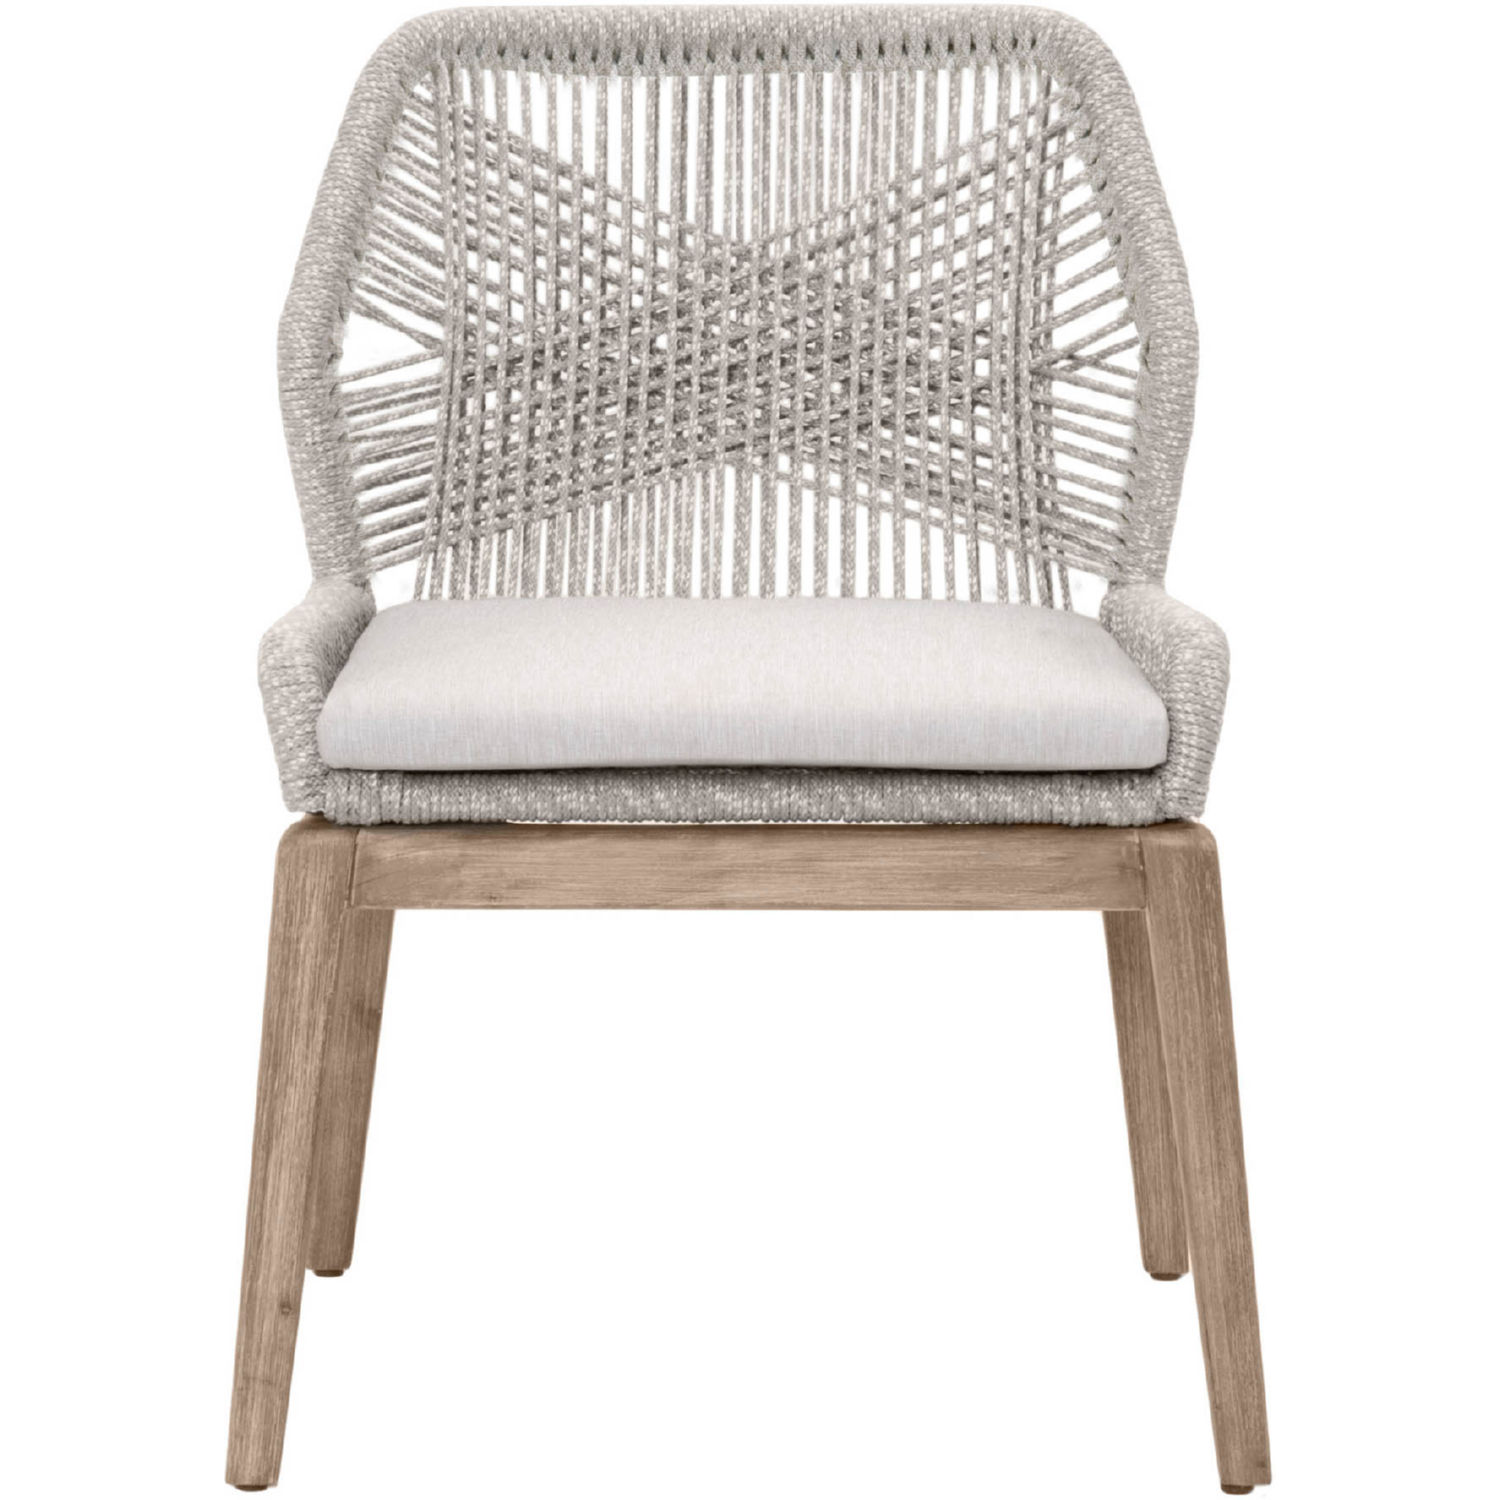 Terrific Loom Dining Chair In Taupe White Rope Grey Fabric Set Of 2 By Orient Express Furniture Theyellowbook Wood Chair Design Ideas Theyellowbookinfo